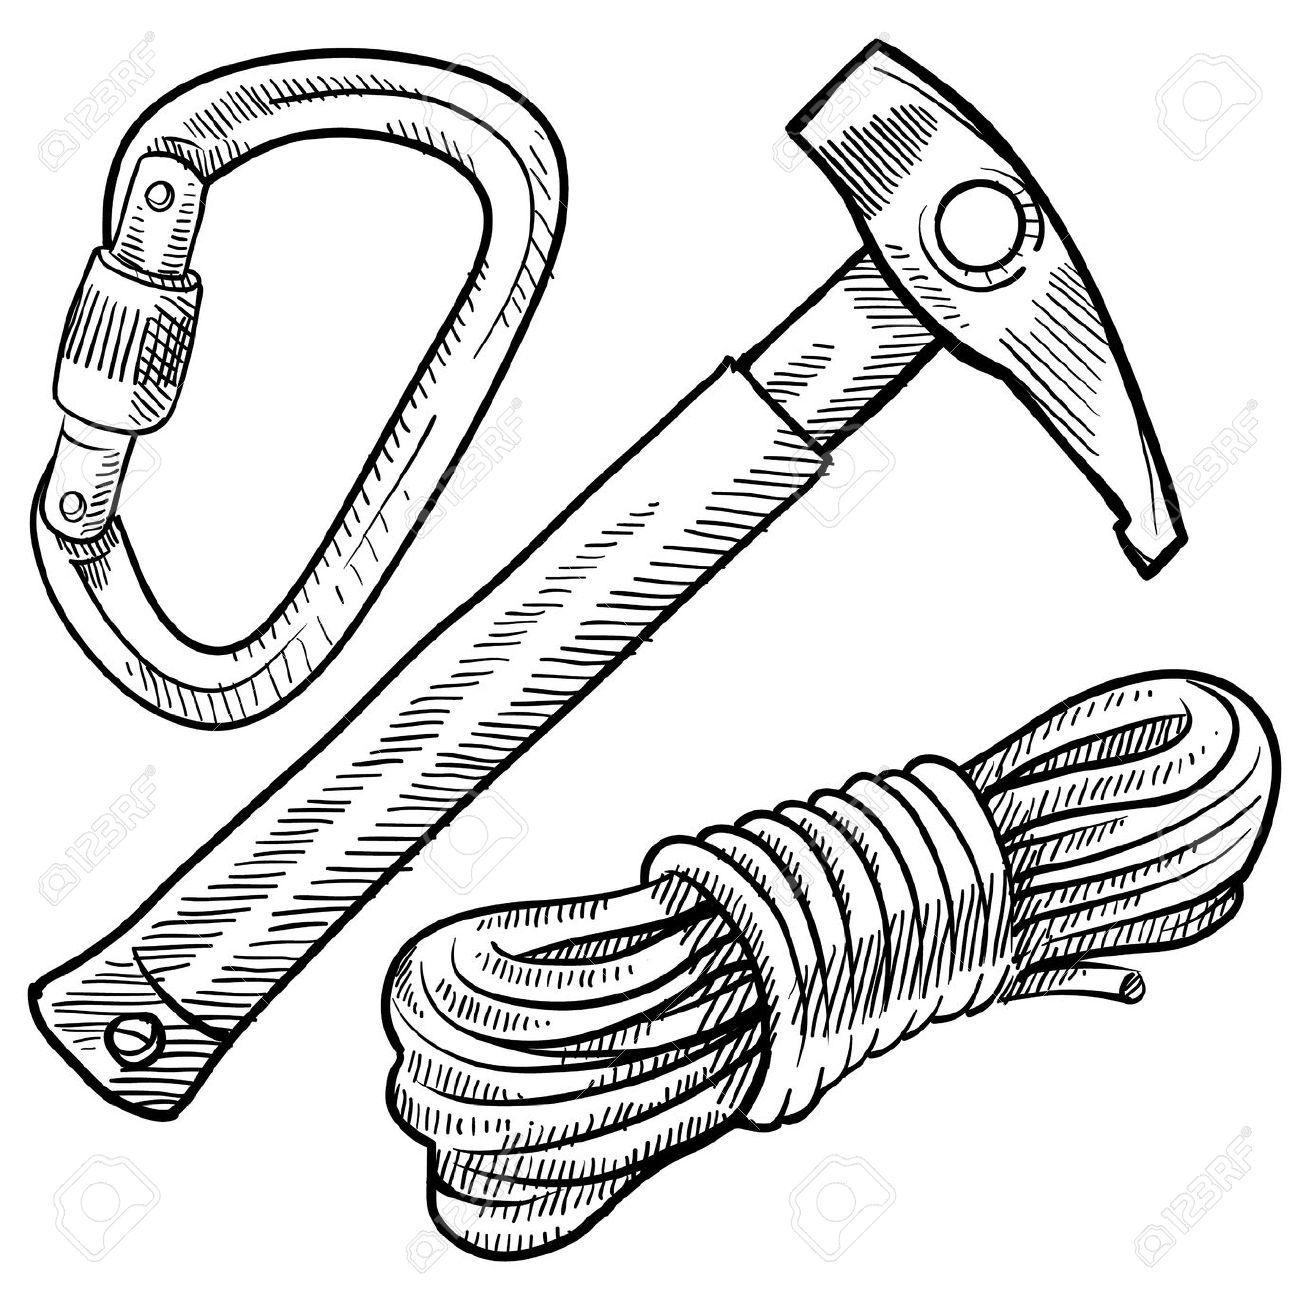 Doodle Style Mountain Climbing Gear Including Rope Pick